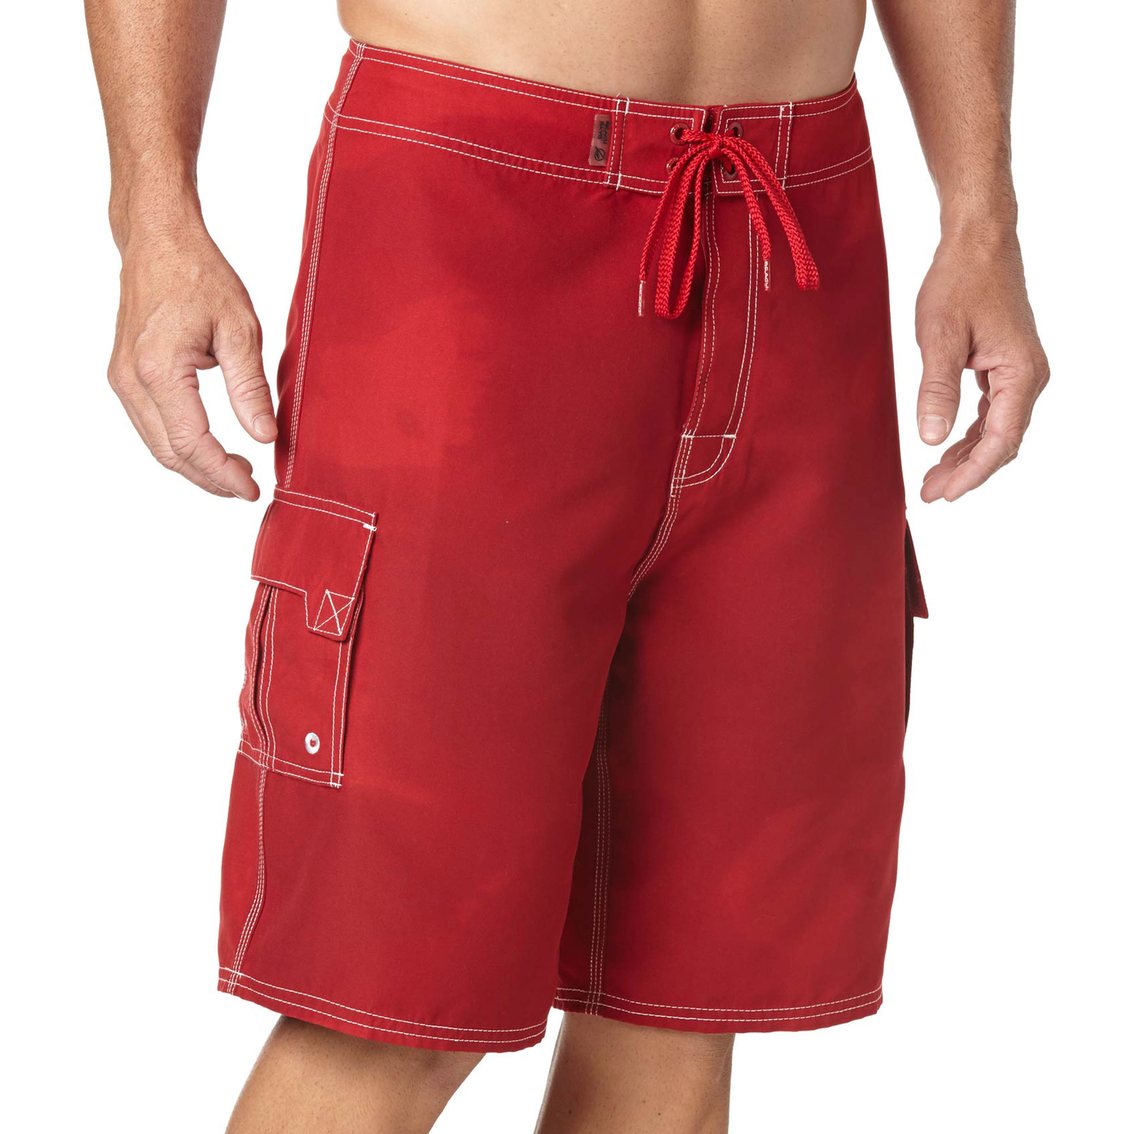 ce56d7c7f5 Beach Rays Solid Boardshorts | Swimwear | Father's Day Shop | Shop ...